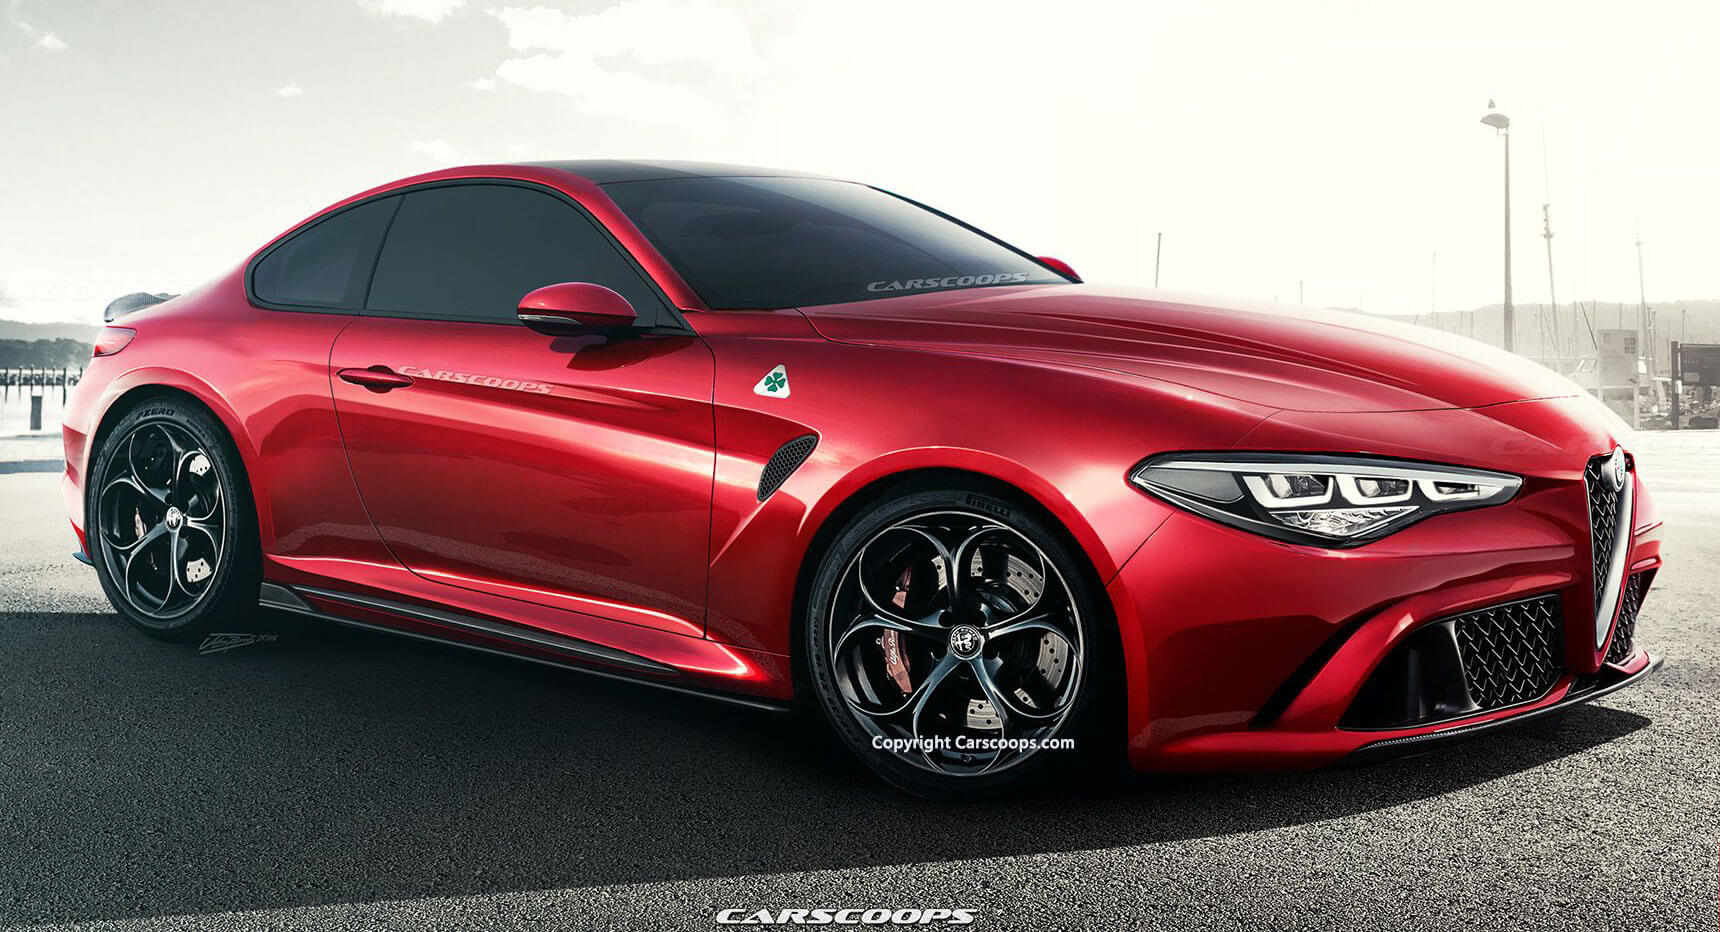 New Alfa Romeo GTV Expected In 2022 With Electrification